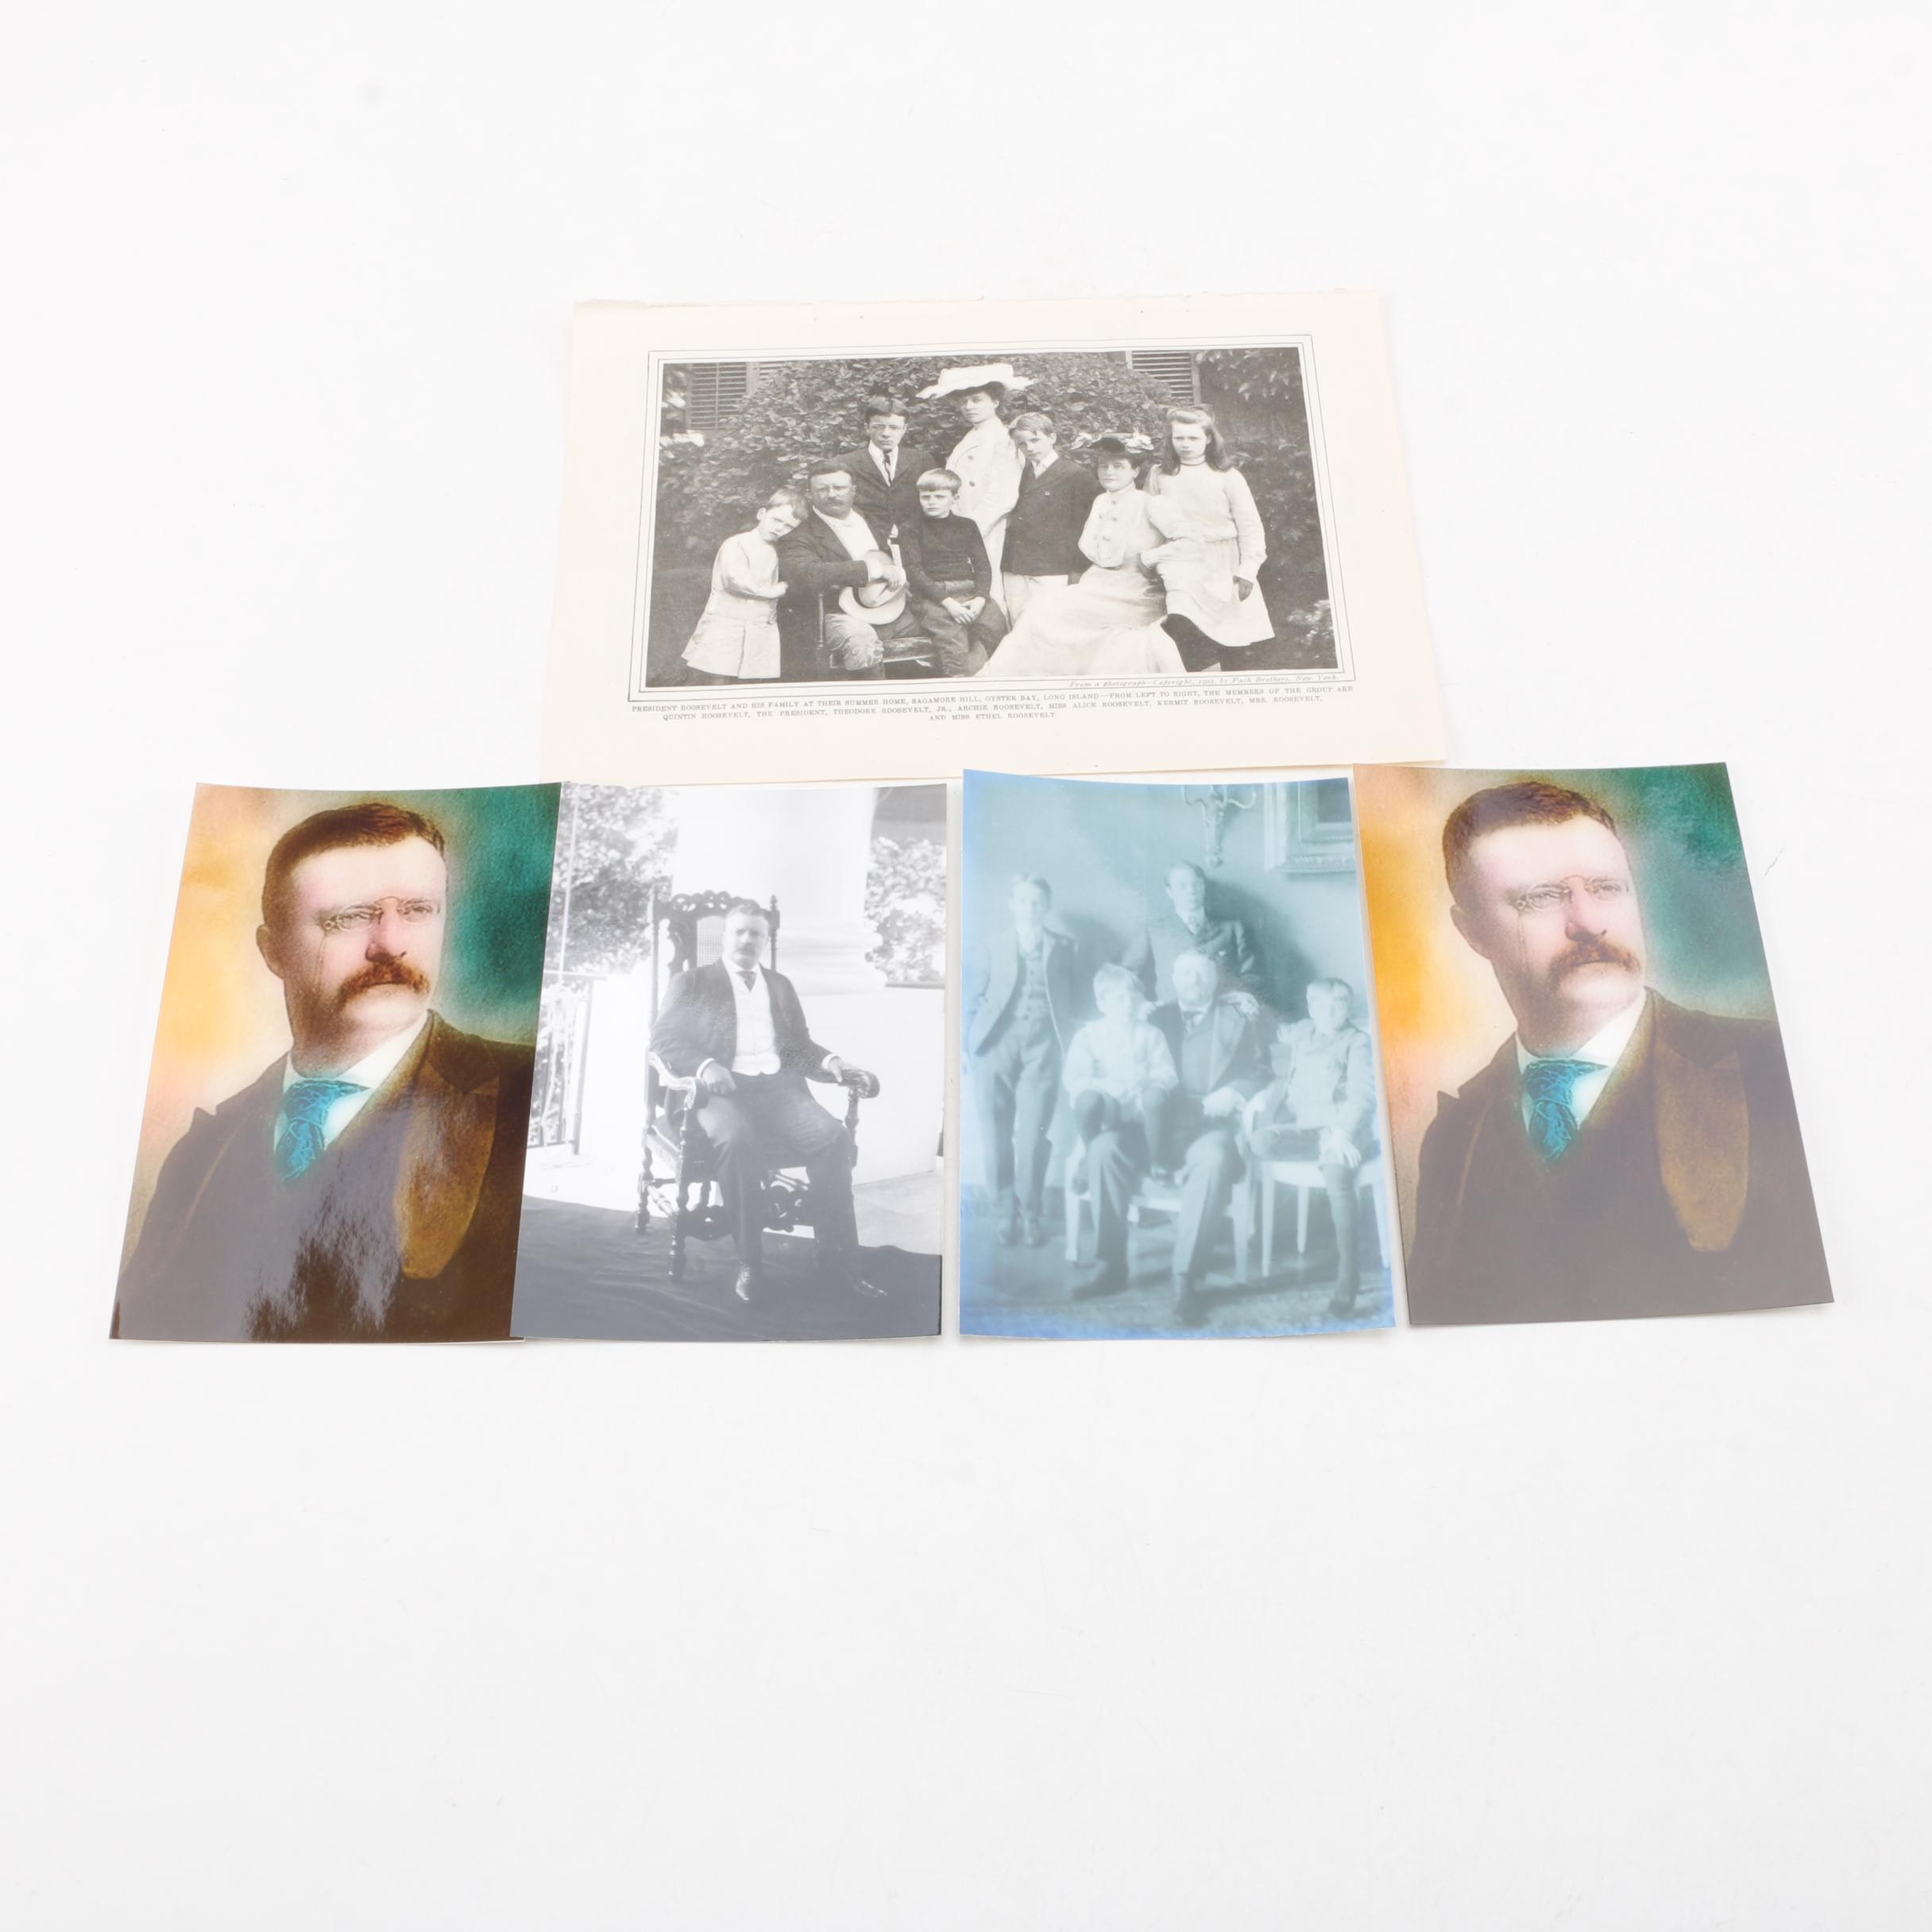 Theodore Roosevelt and Family Photographs